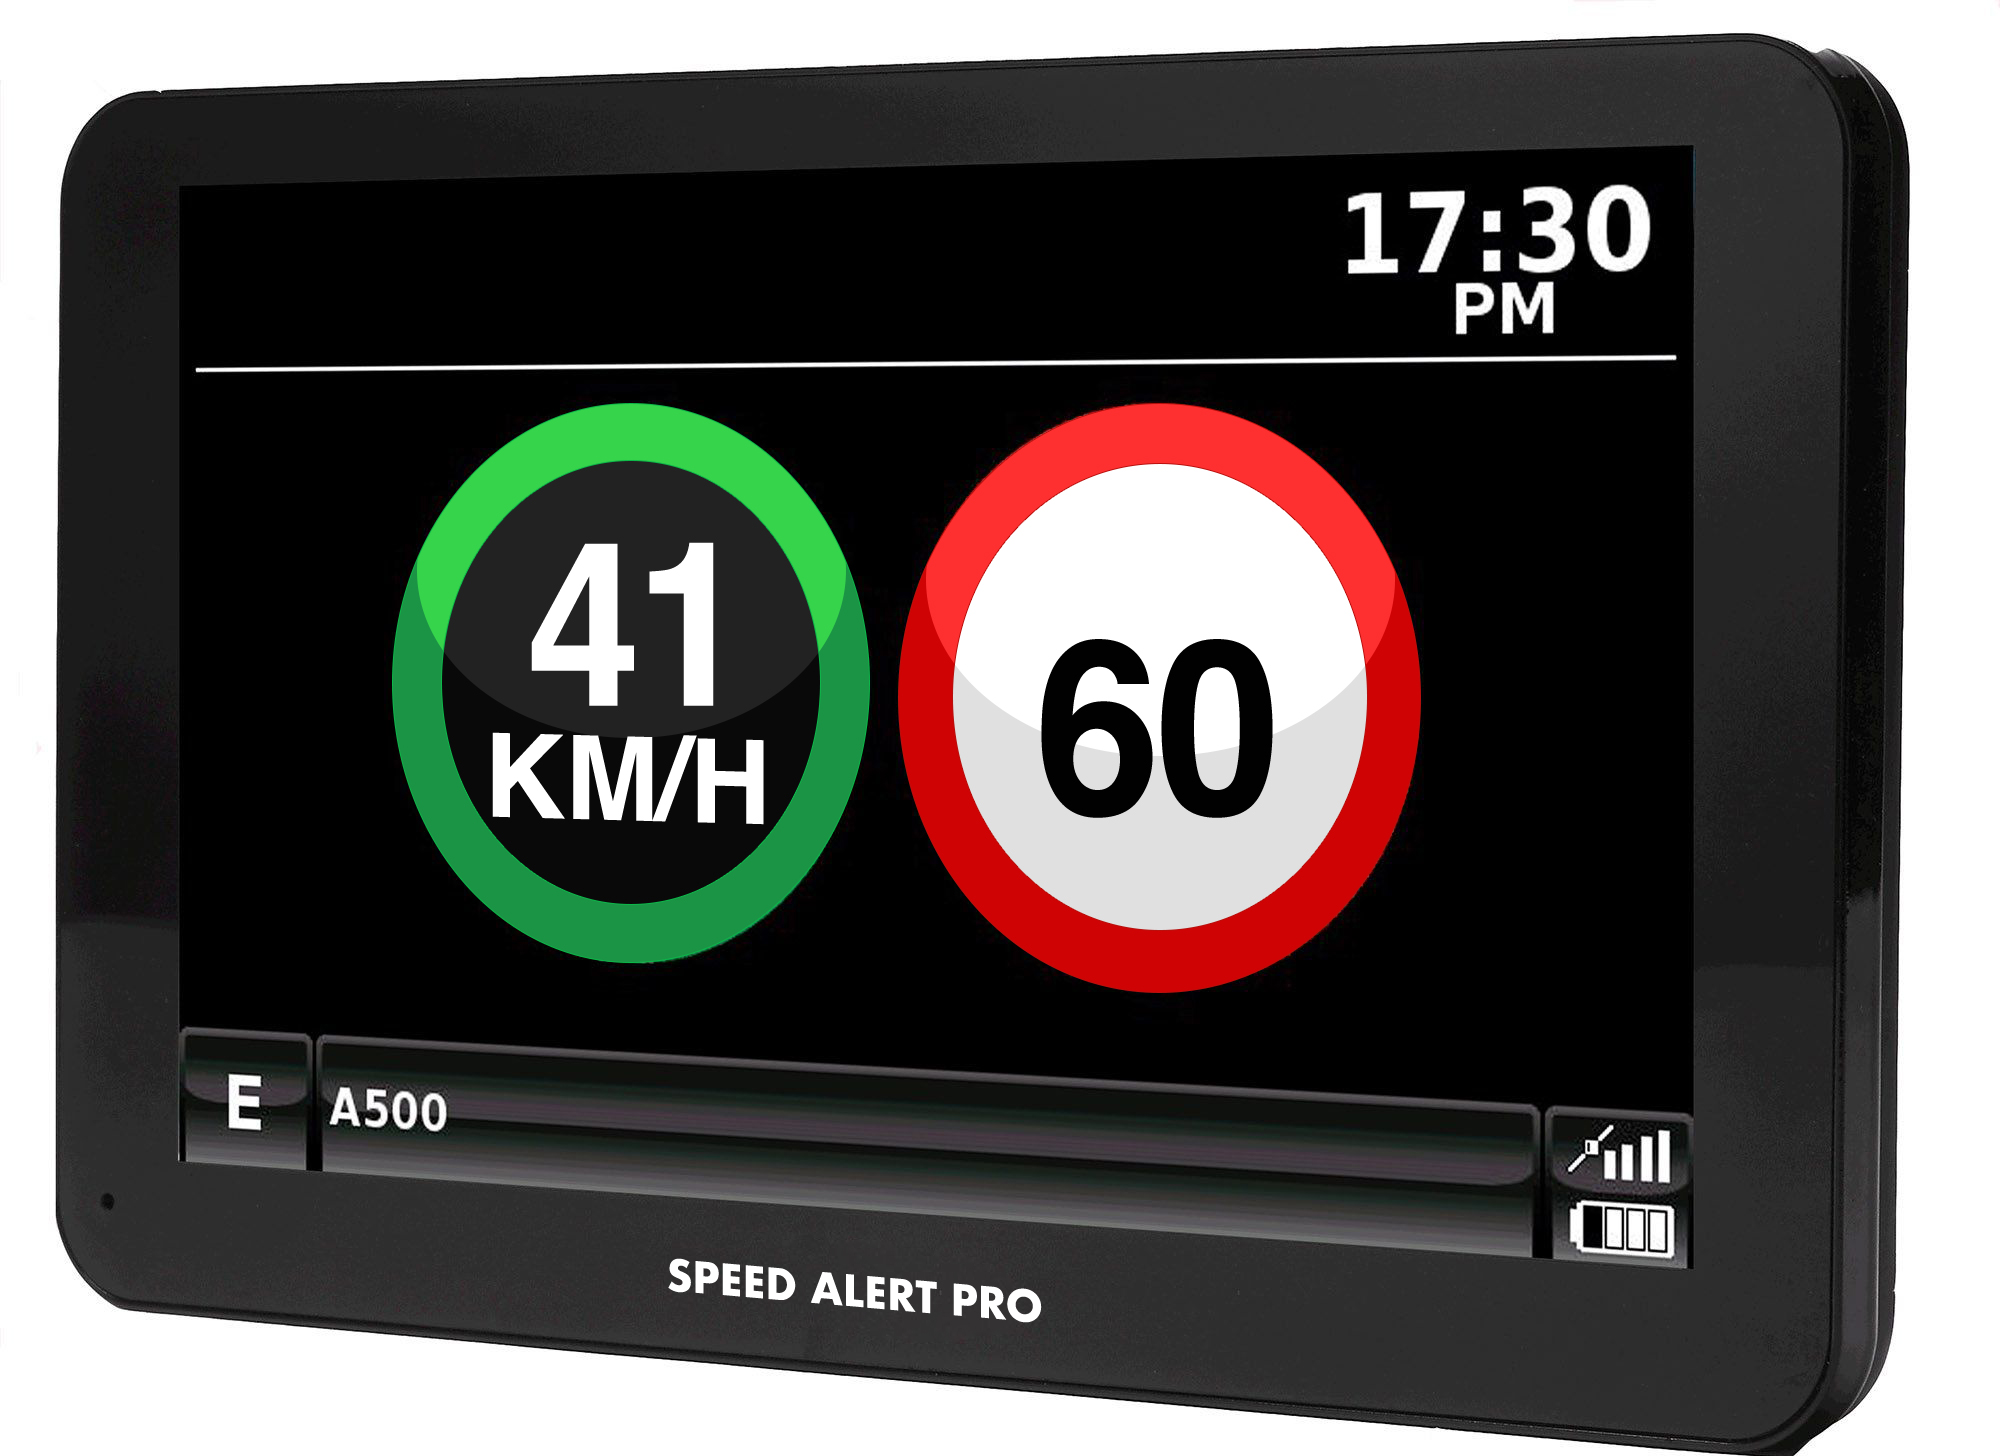 SPEED ALERT PRO DISPLAYS YOUR SPEED AND SPEED LIMIT